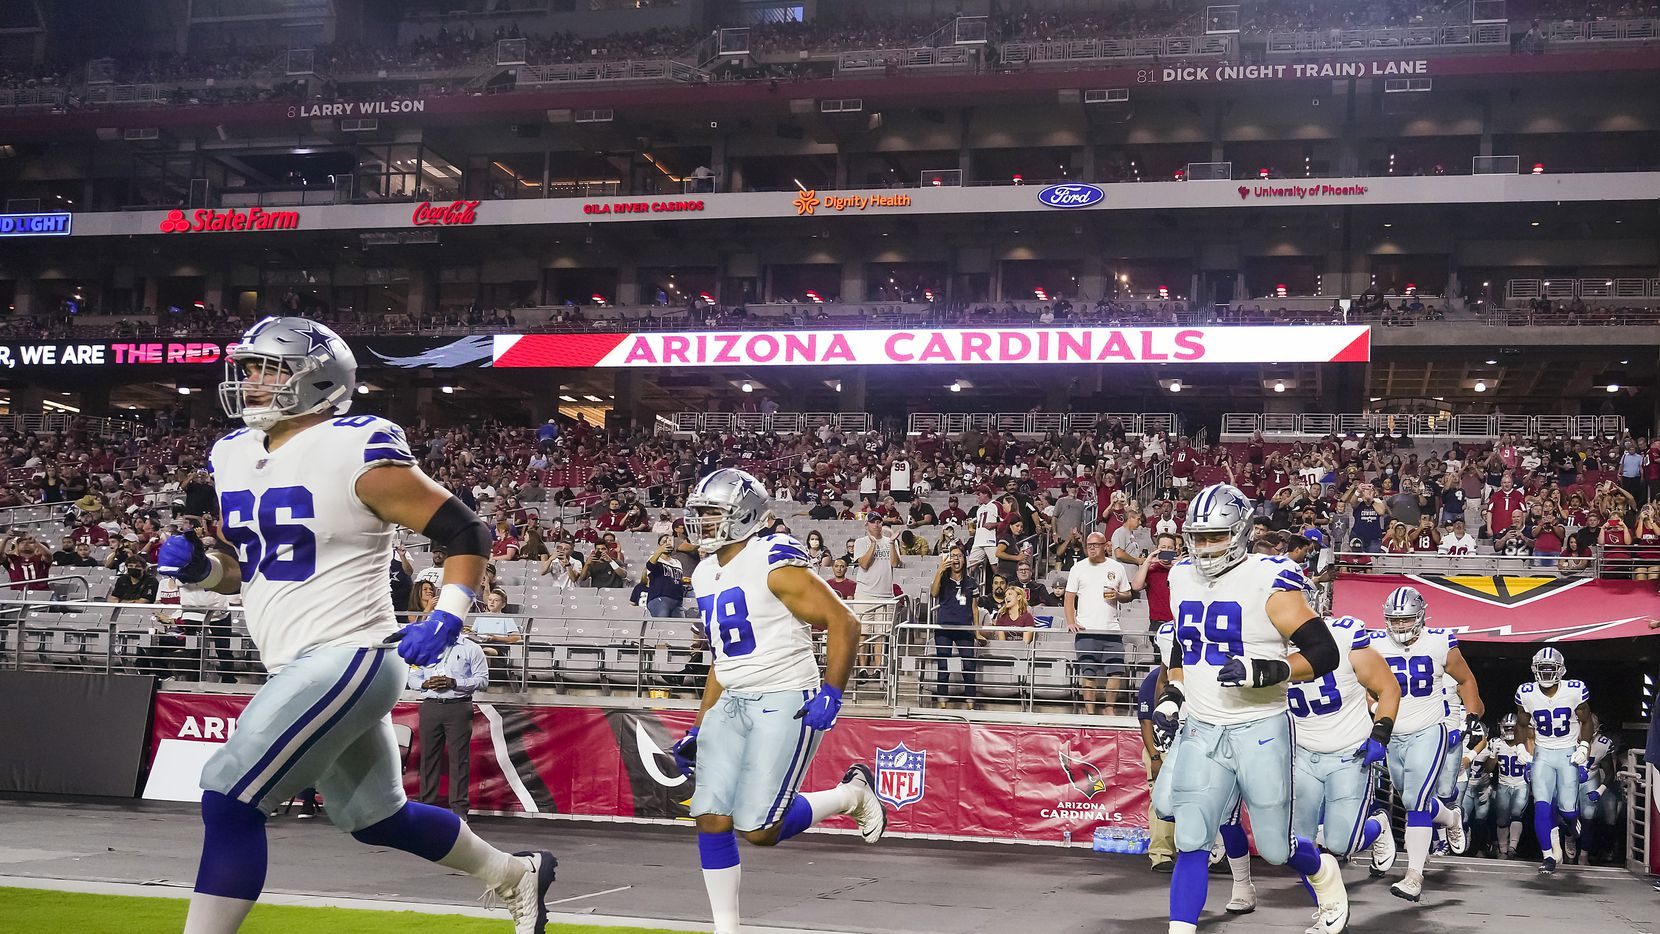 Dallas Cowboys guard Connor McGovern (66), tackle Terence Steele (78), Dallas Cowboys tackle Brandon Knight (69) lead teammates as they take the field before an NFL football game against the Arizona Cardinals at State Farm Stadium on Friday, Aug. 13, 2021, in Glendale, Ariz.